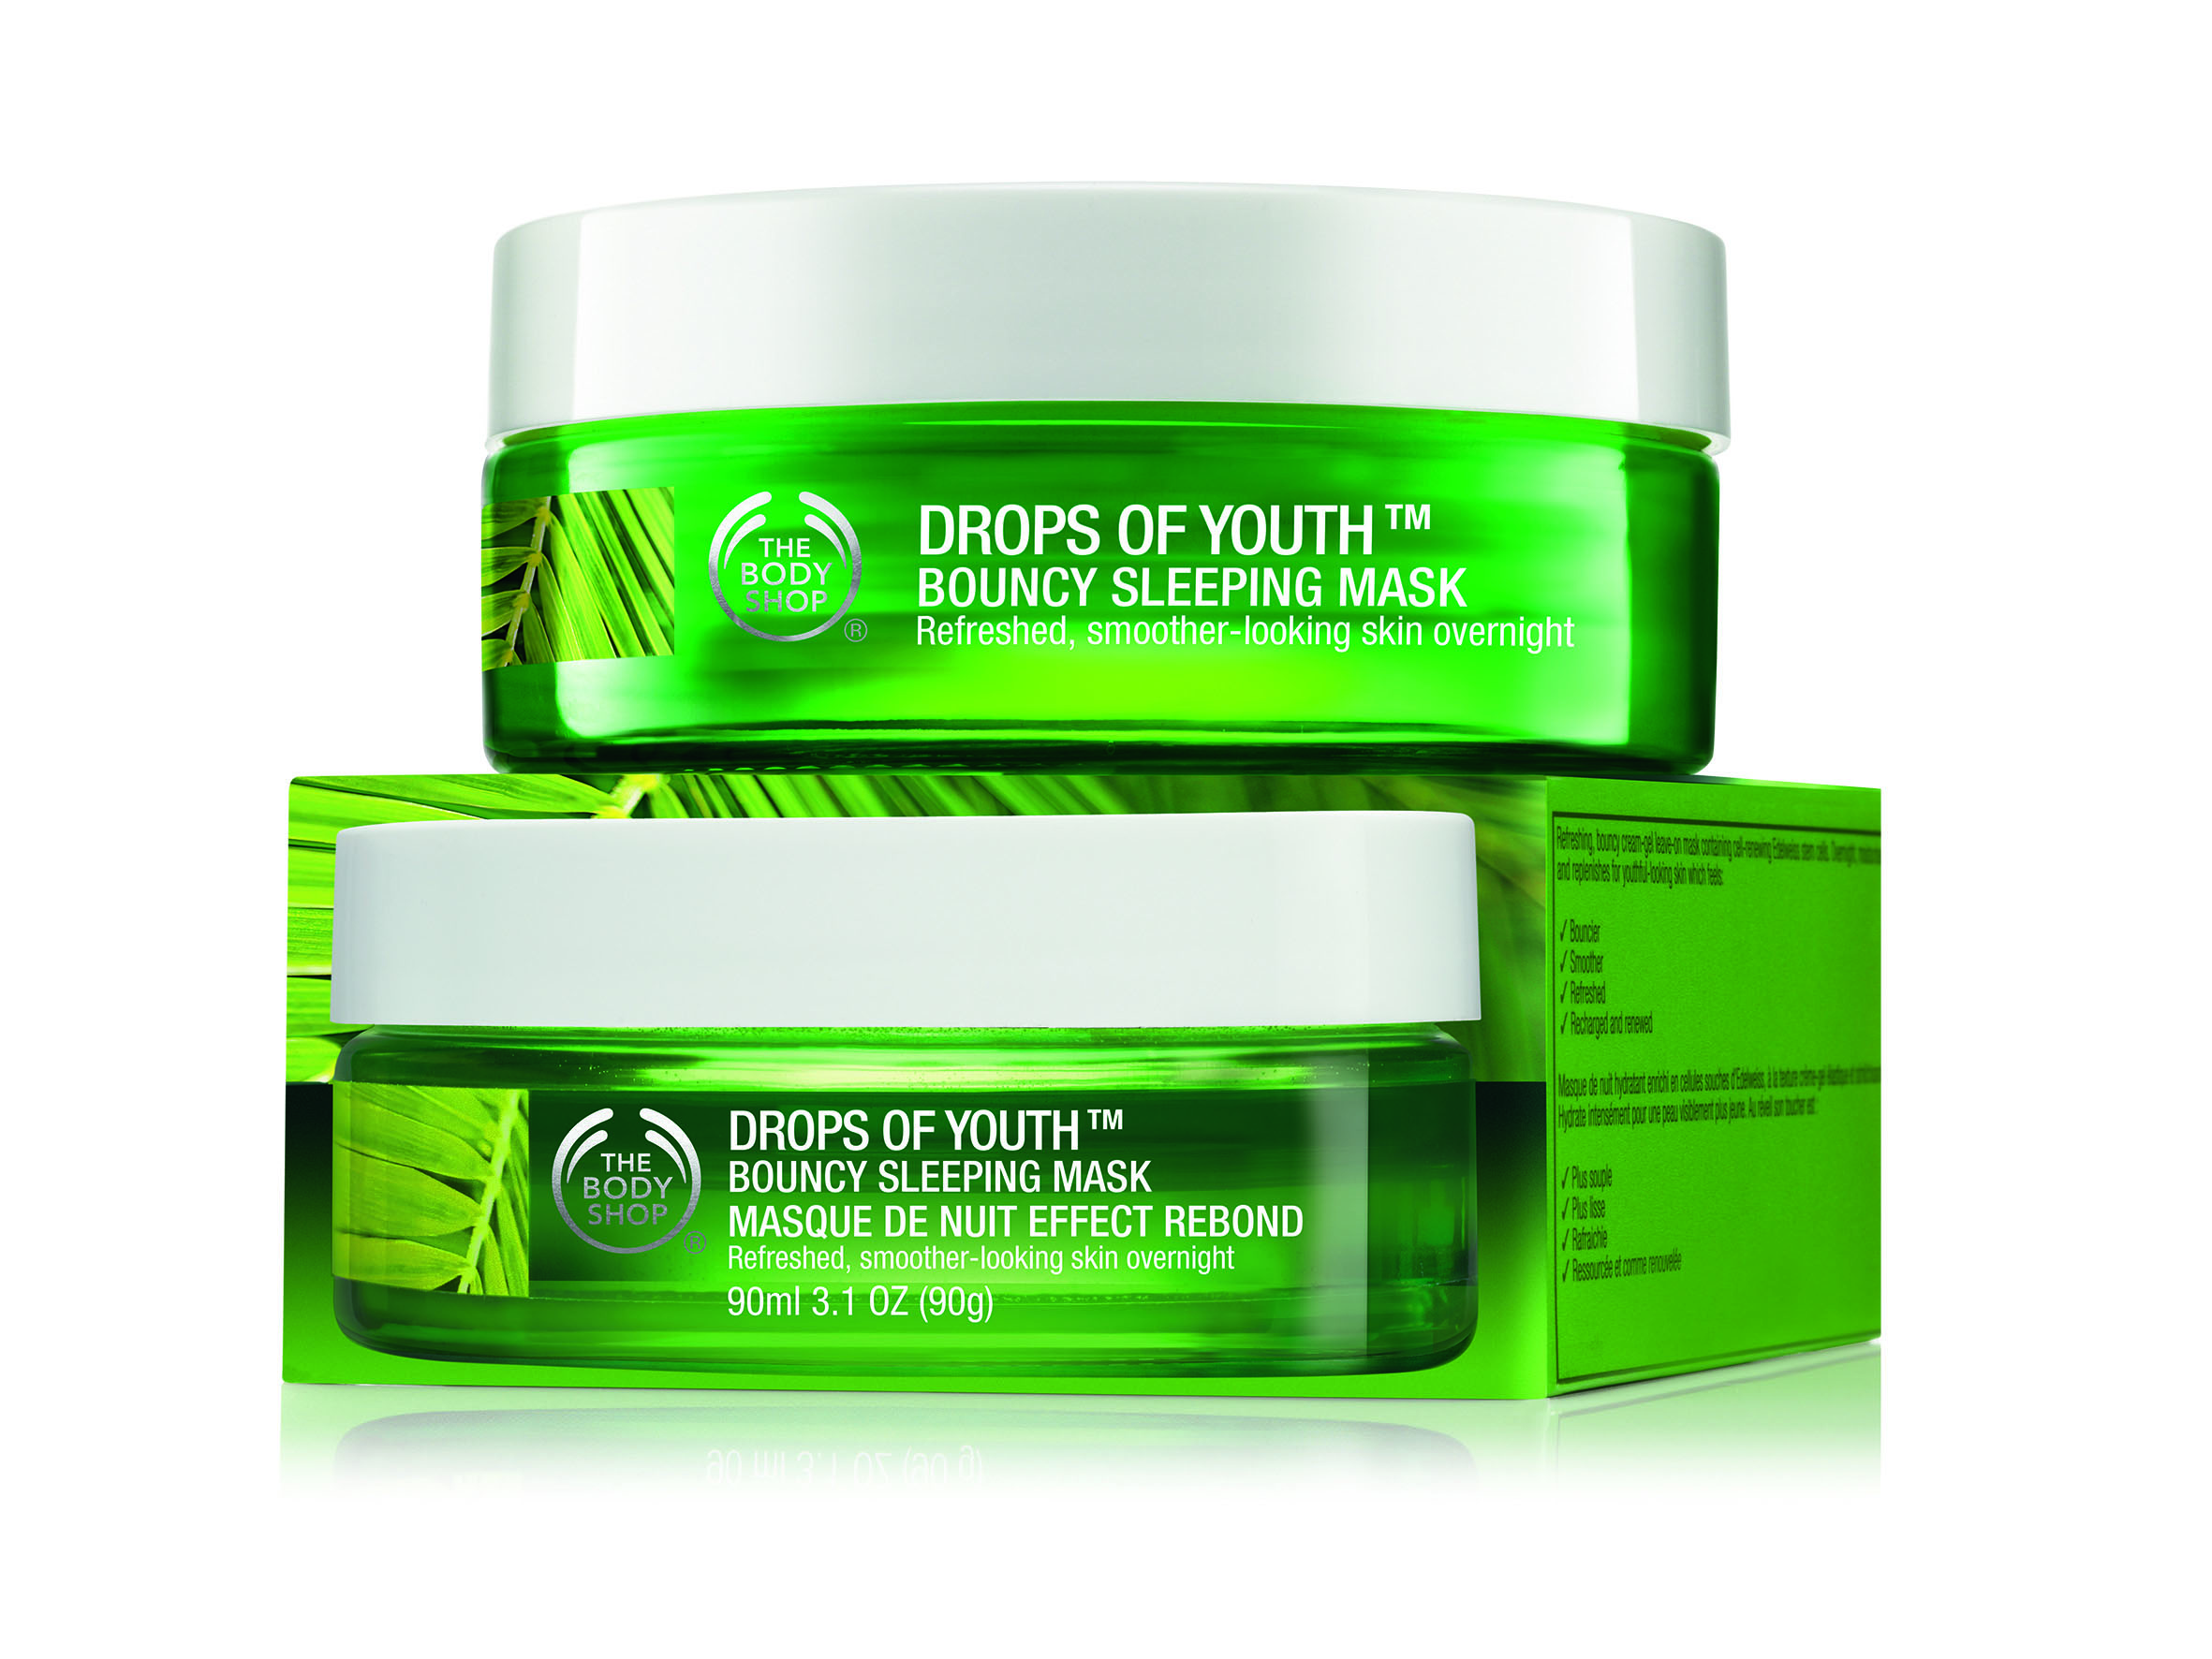 Drops of Youth Bouncy Sleeping Mask_1.399k